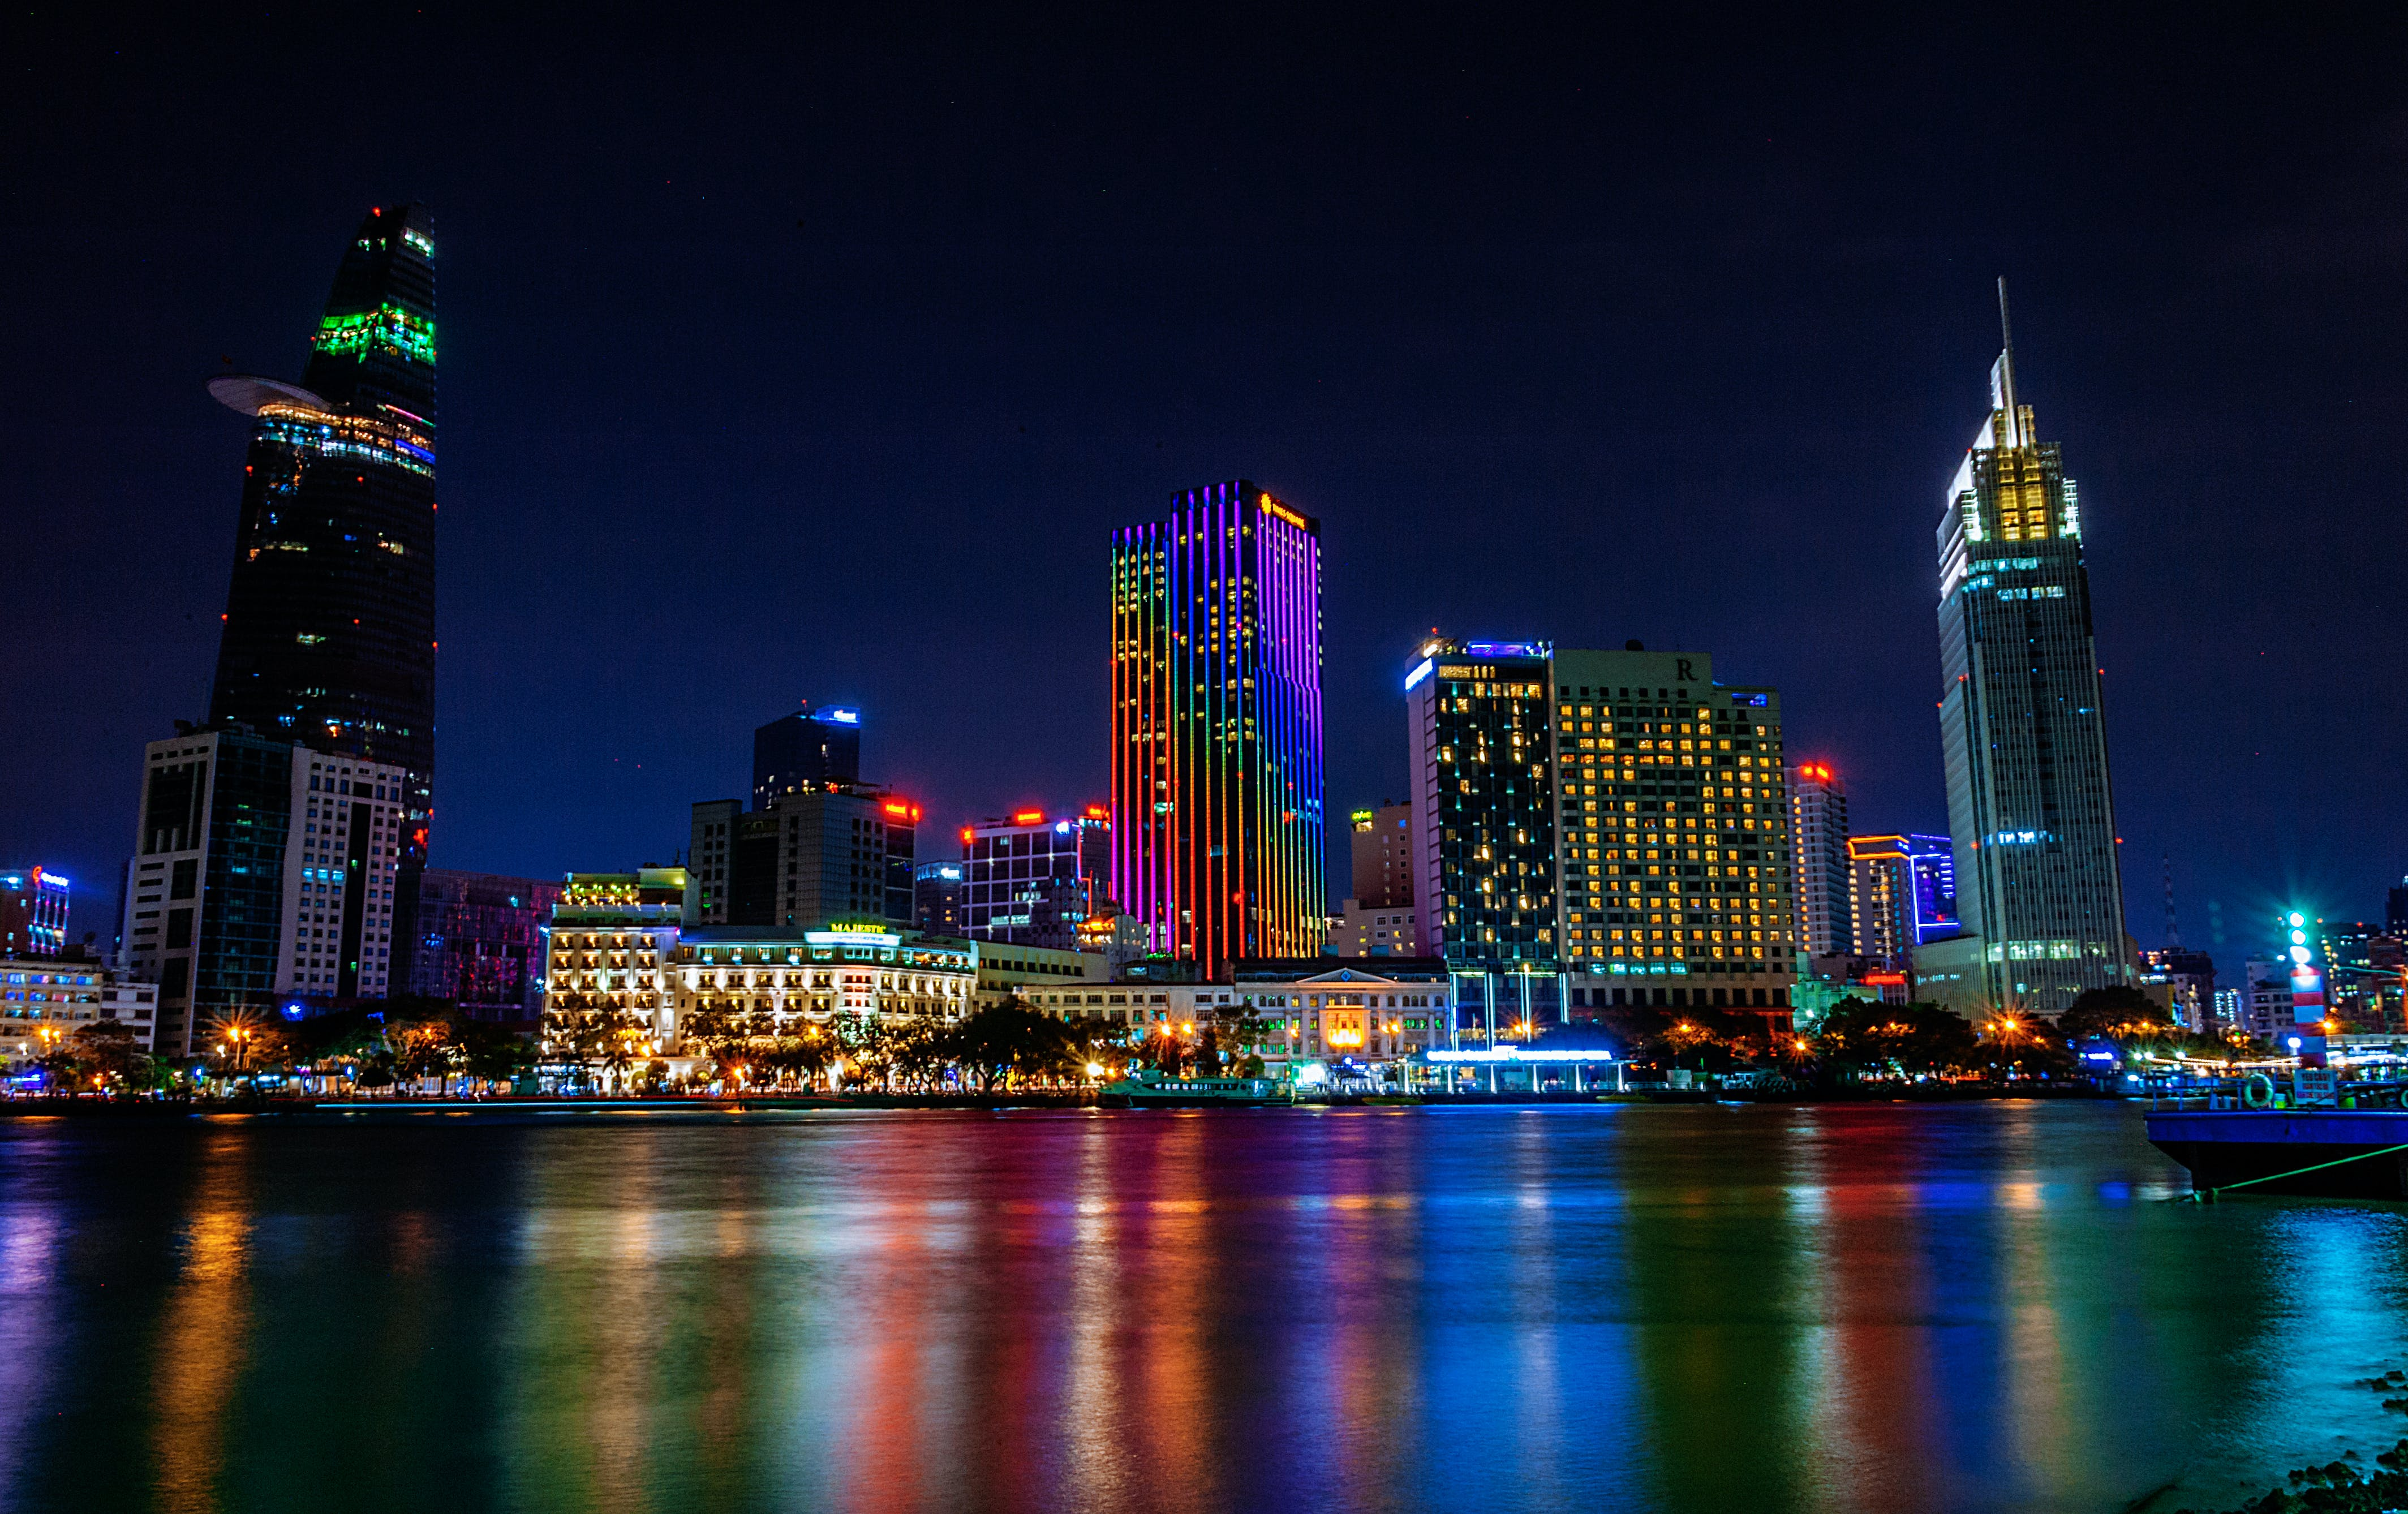 Photography of a City at night